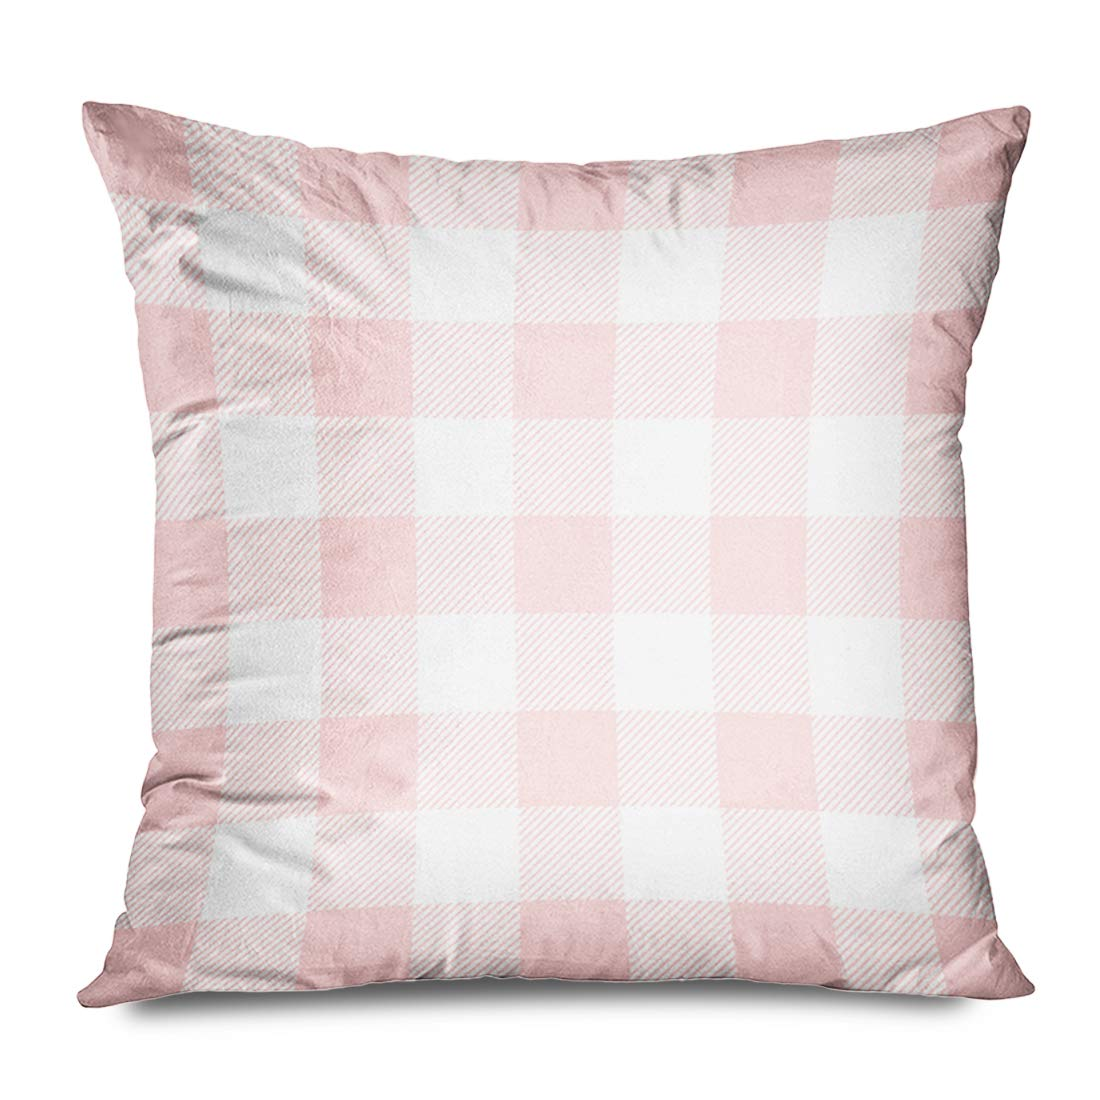 Ahawoso Throw Pillow Cover Square 18x18 Inches Light Pink Preppy Buffalo Check Plaid Cushion Case Home Decor Zippered Pillowcase